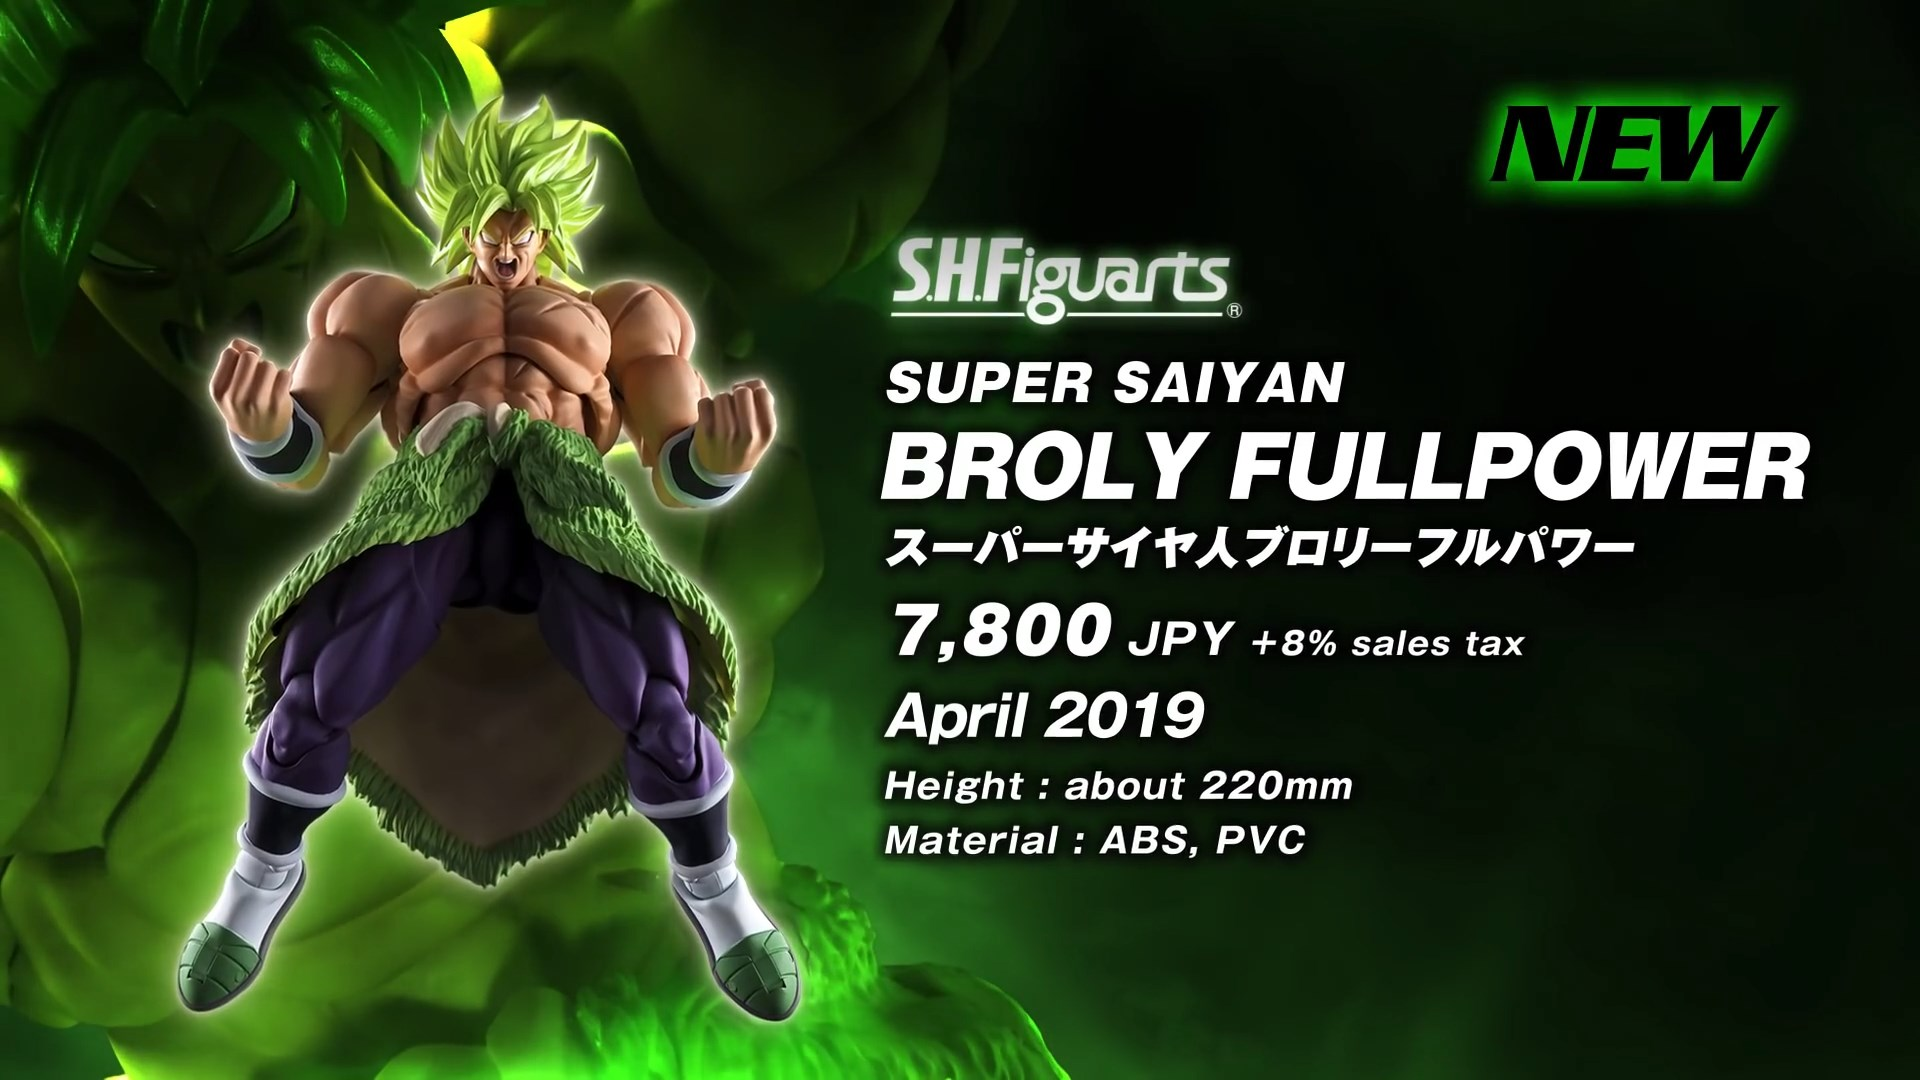 S.H.Figuarts Broly Super Saiyan Full Power